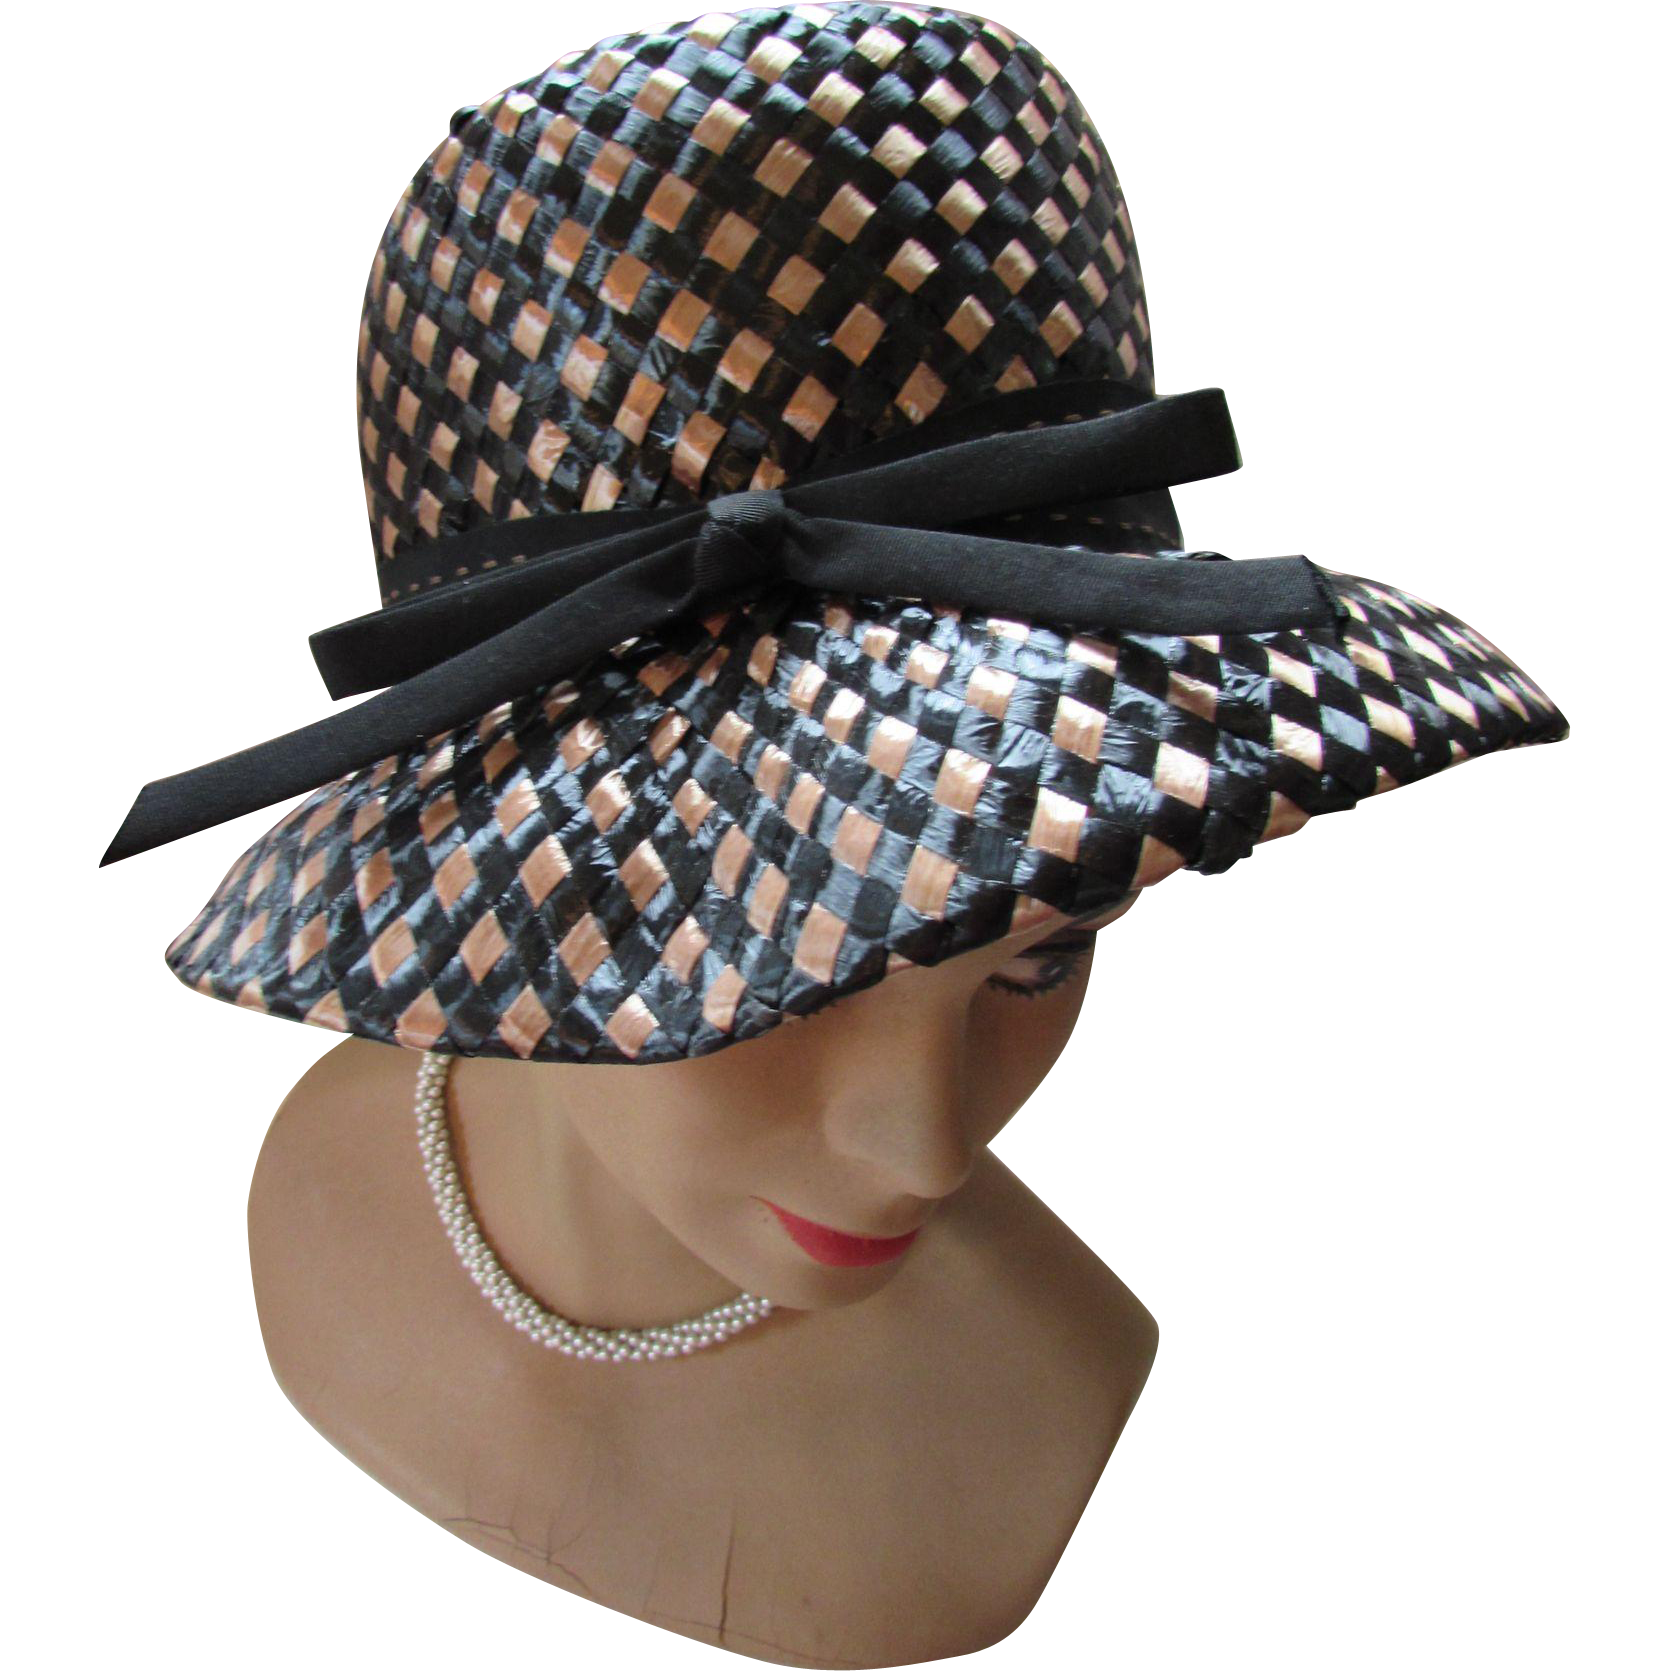 Lampshade Style Woven Hat in Black and Cocoa by Mr. John Empress